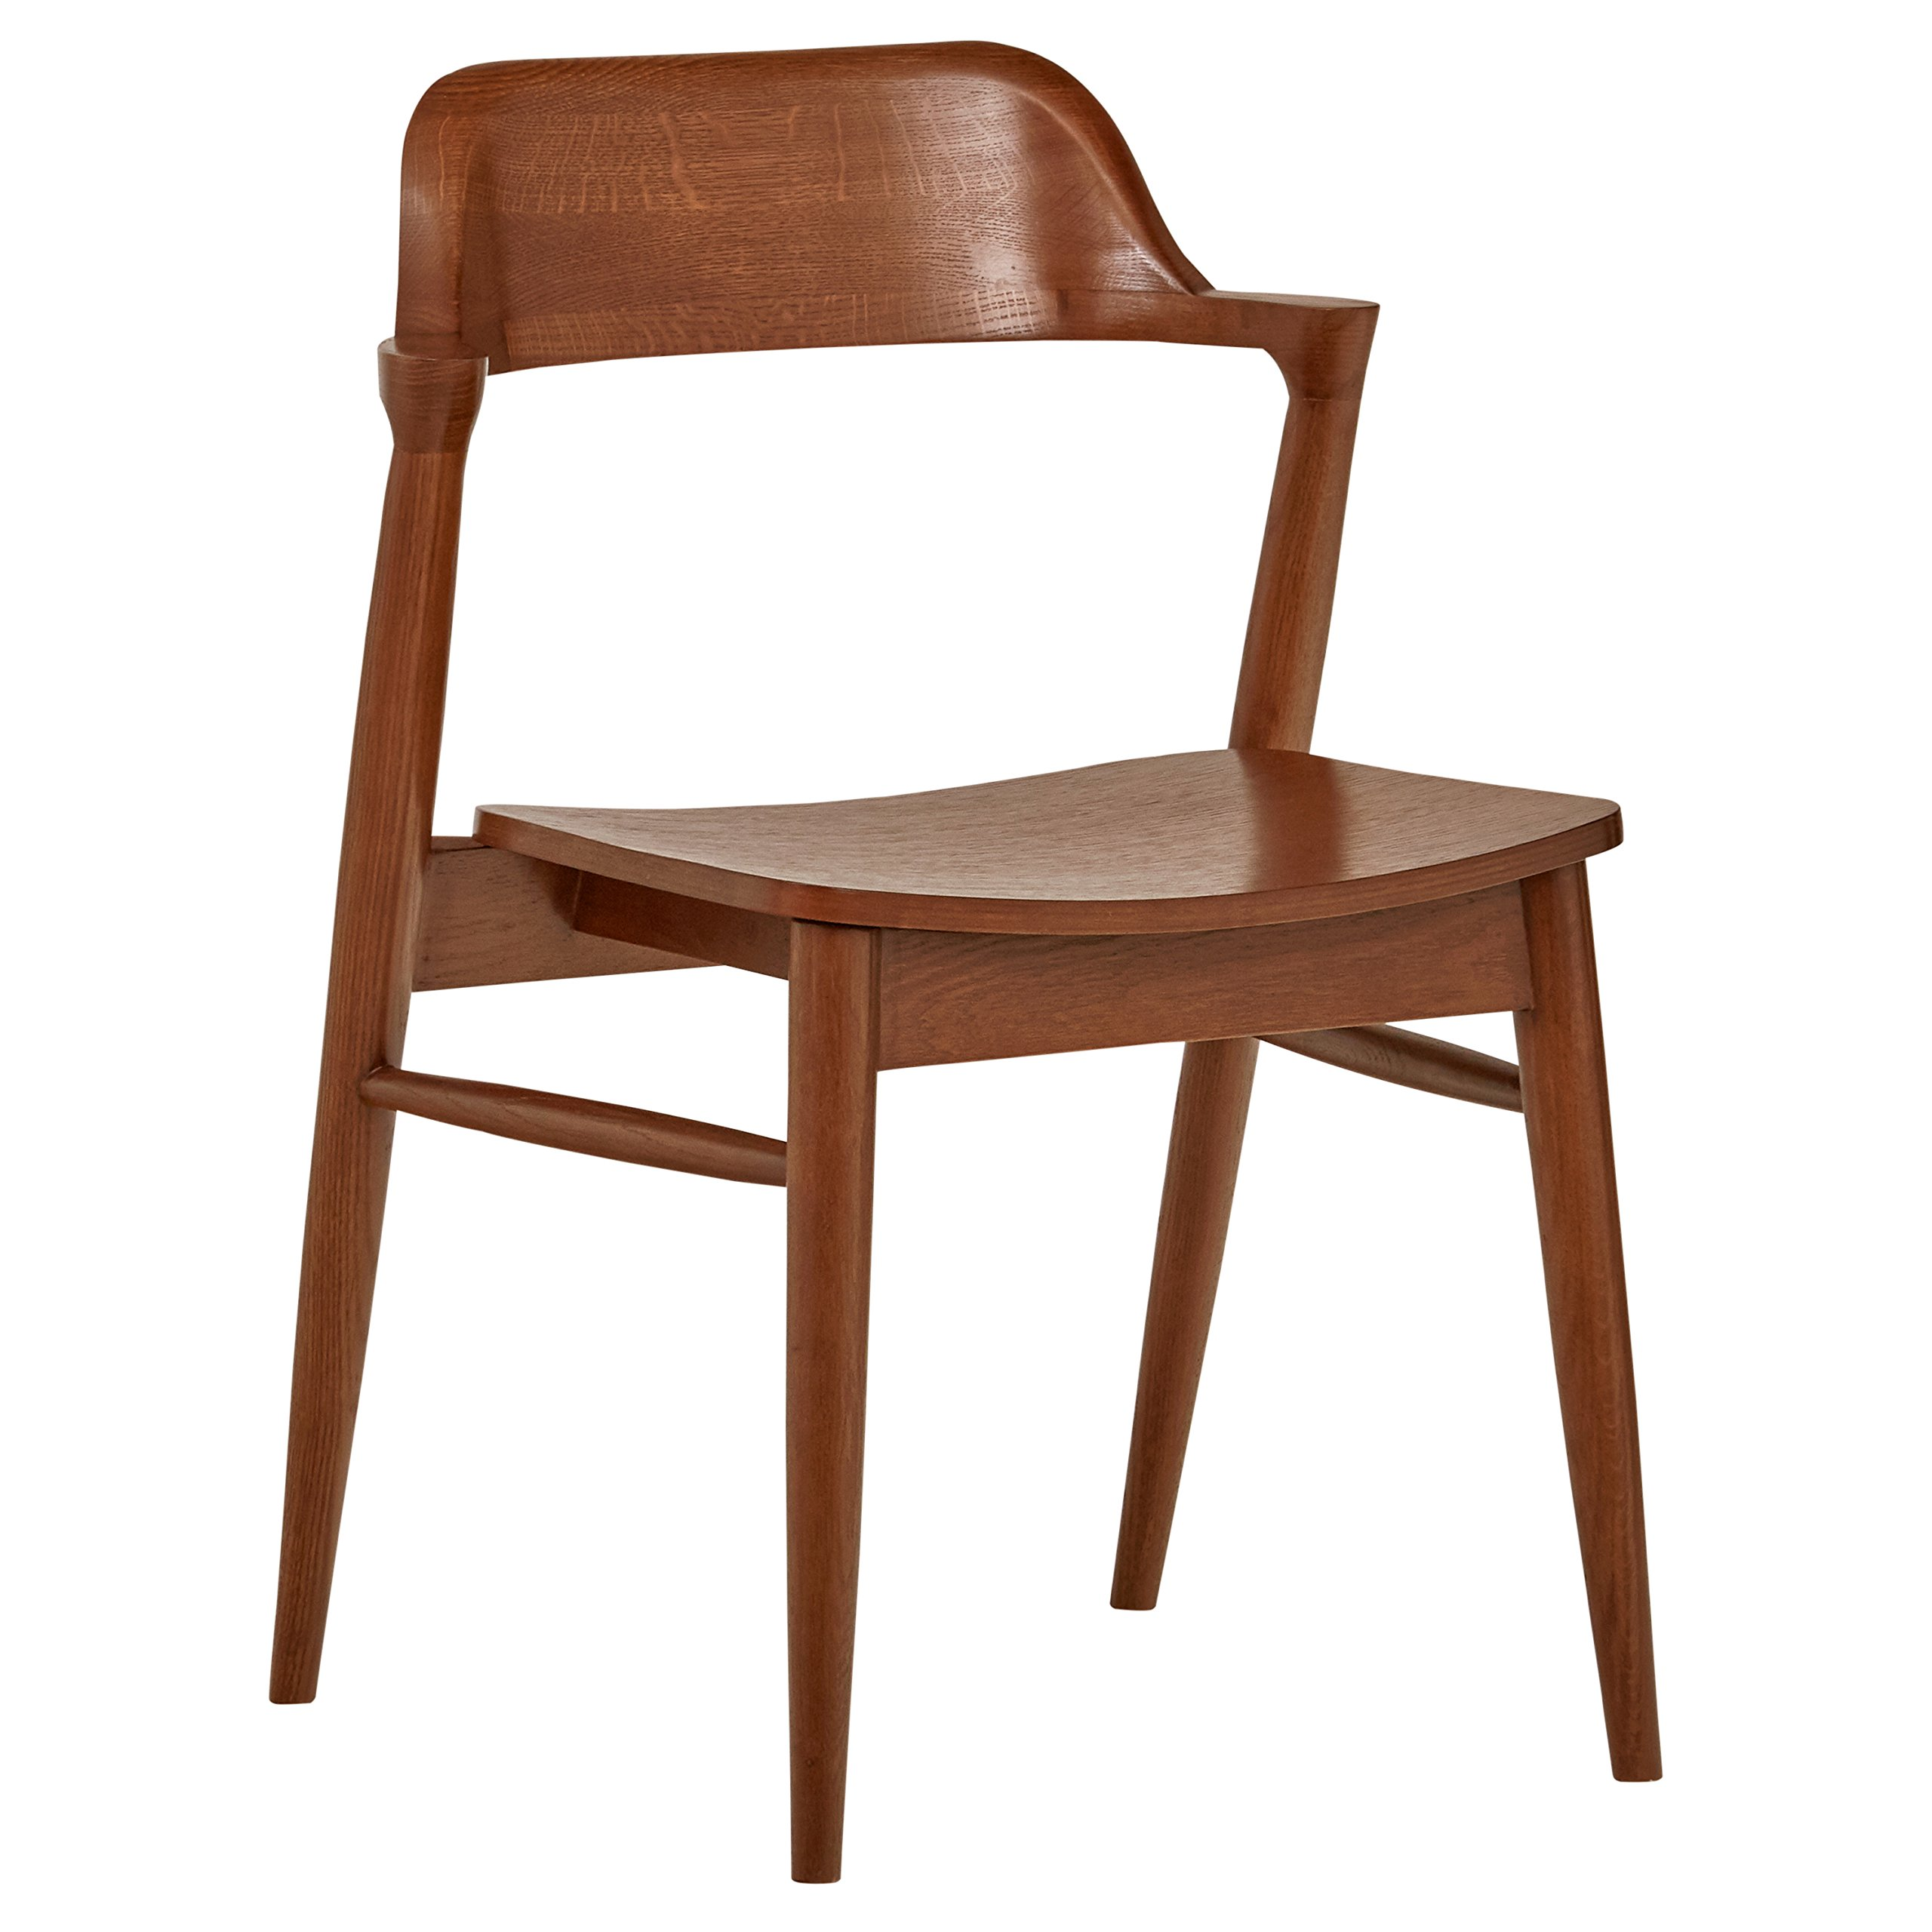 Rivet Mid-Century Modern Low-Back Dining Chair, 30'' H, Walnut